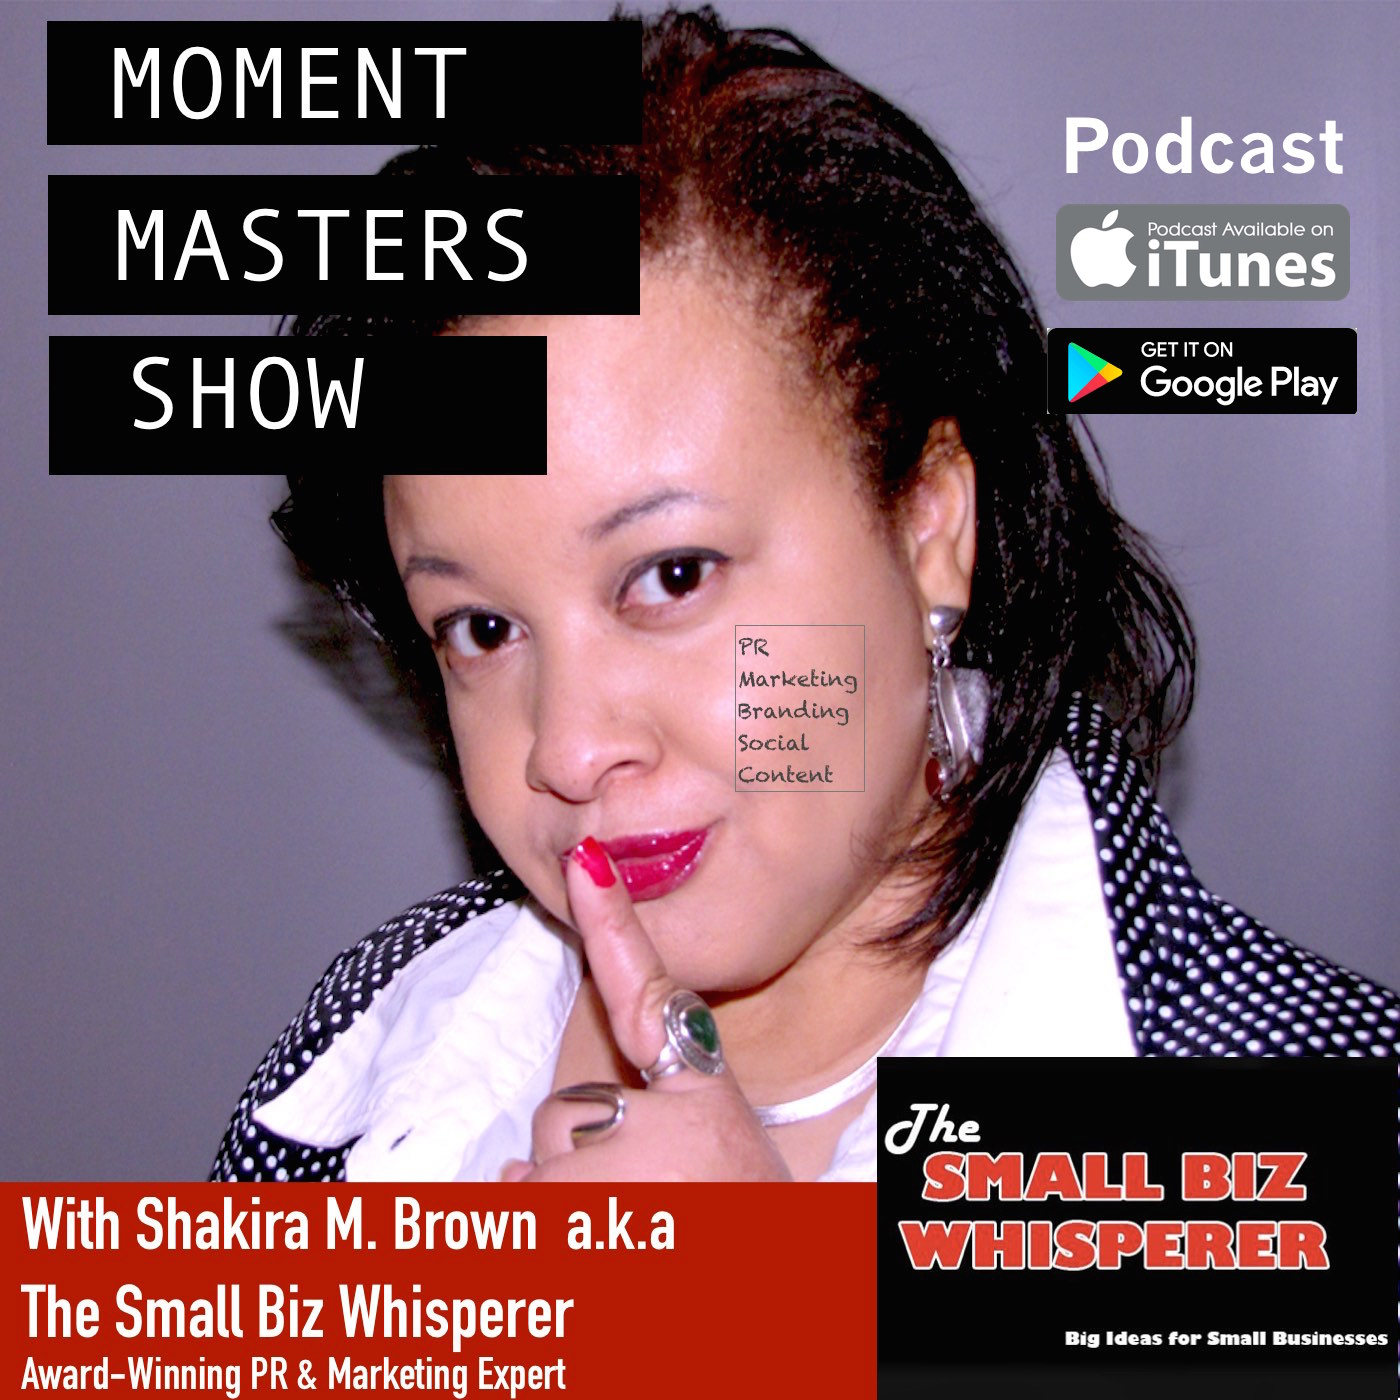 Moment Masters Small Business Podcast